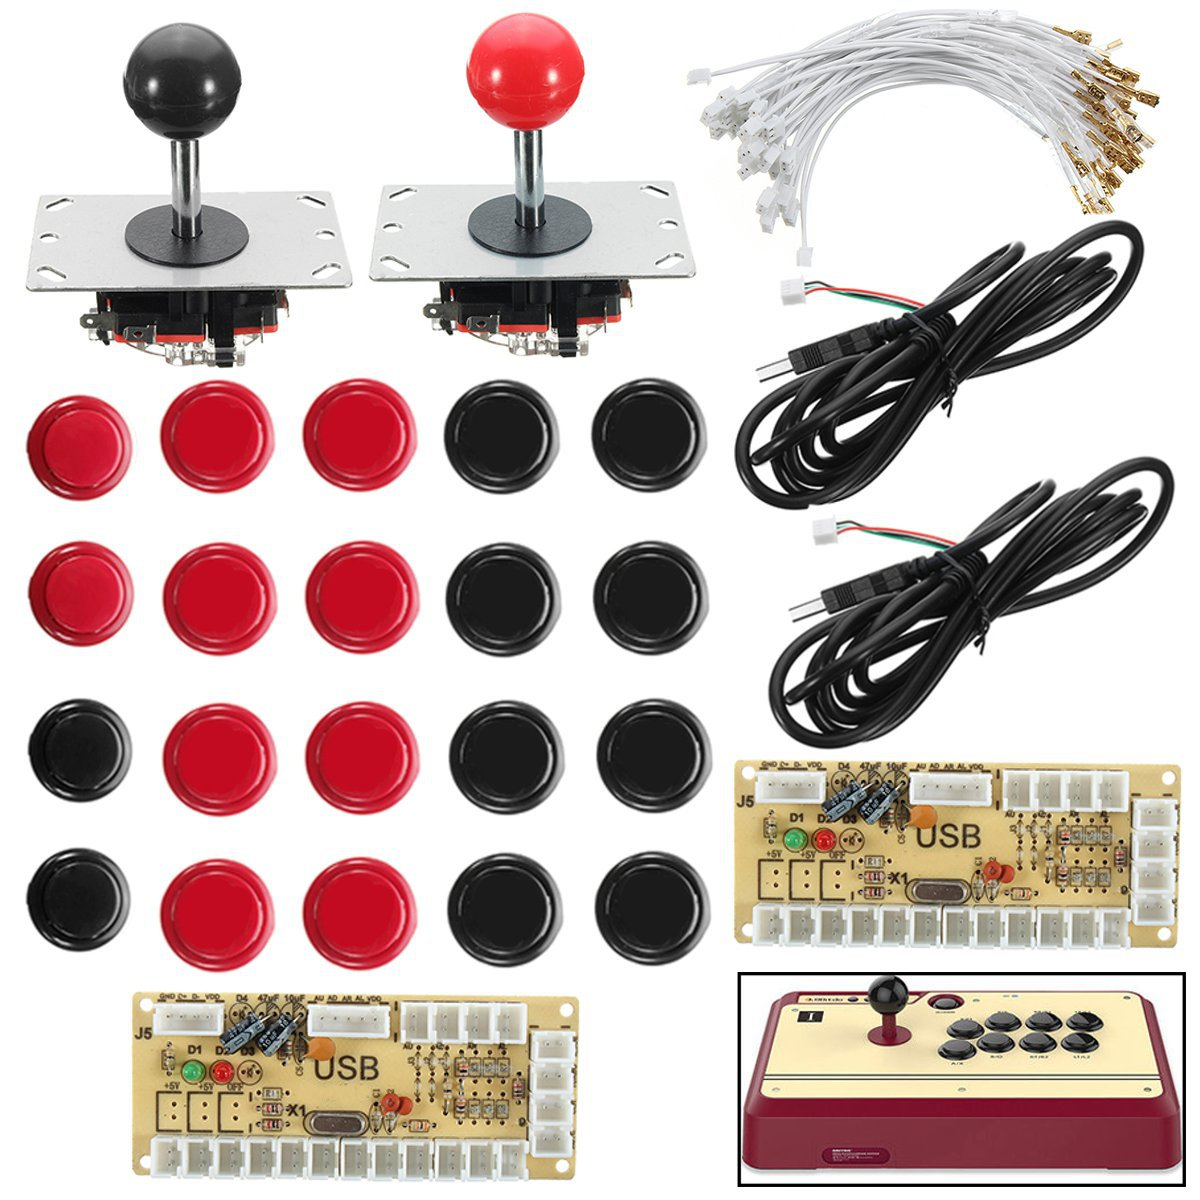 1 Set for 2 Player Zero Delay Joystick Arcade DIY 2 LED USB Encoder+2 Joystick+20 Illuminated Push Buttons+28 Cables Arcade Game цена